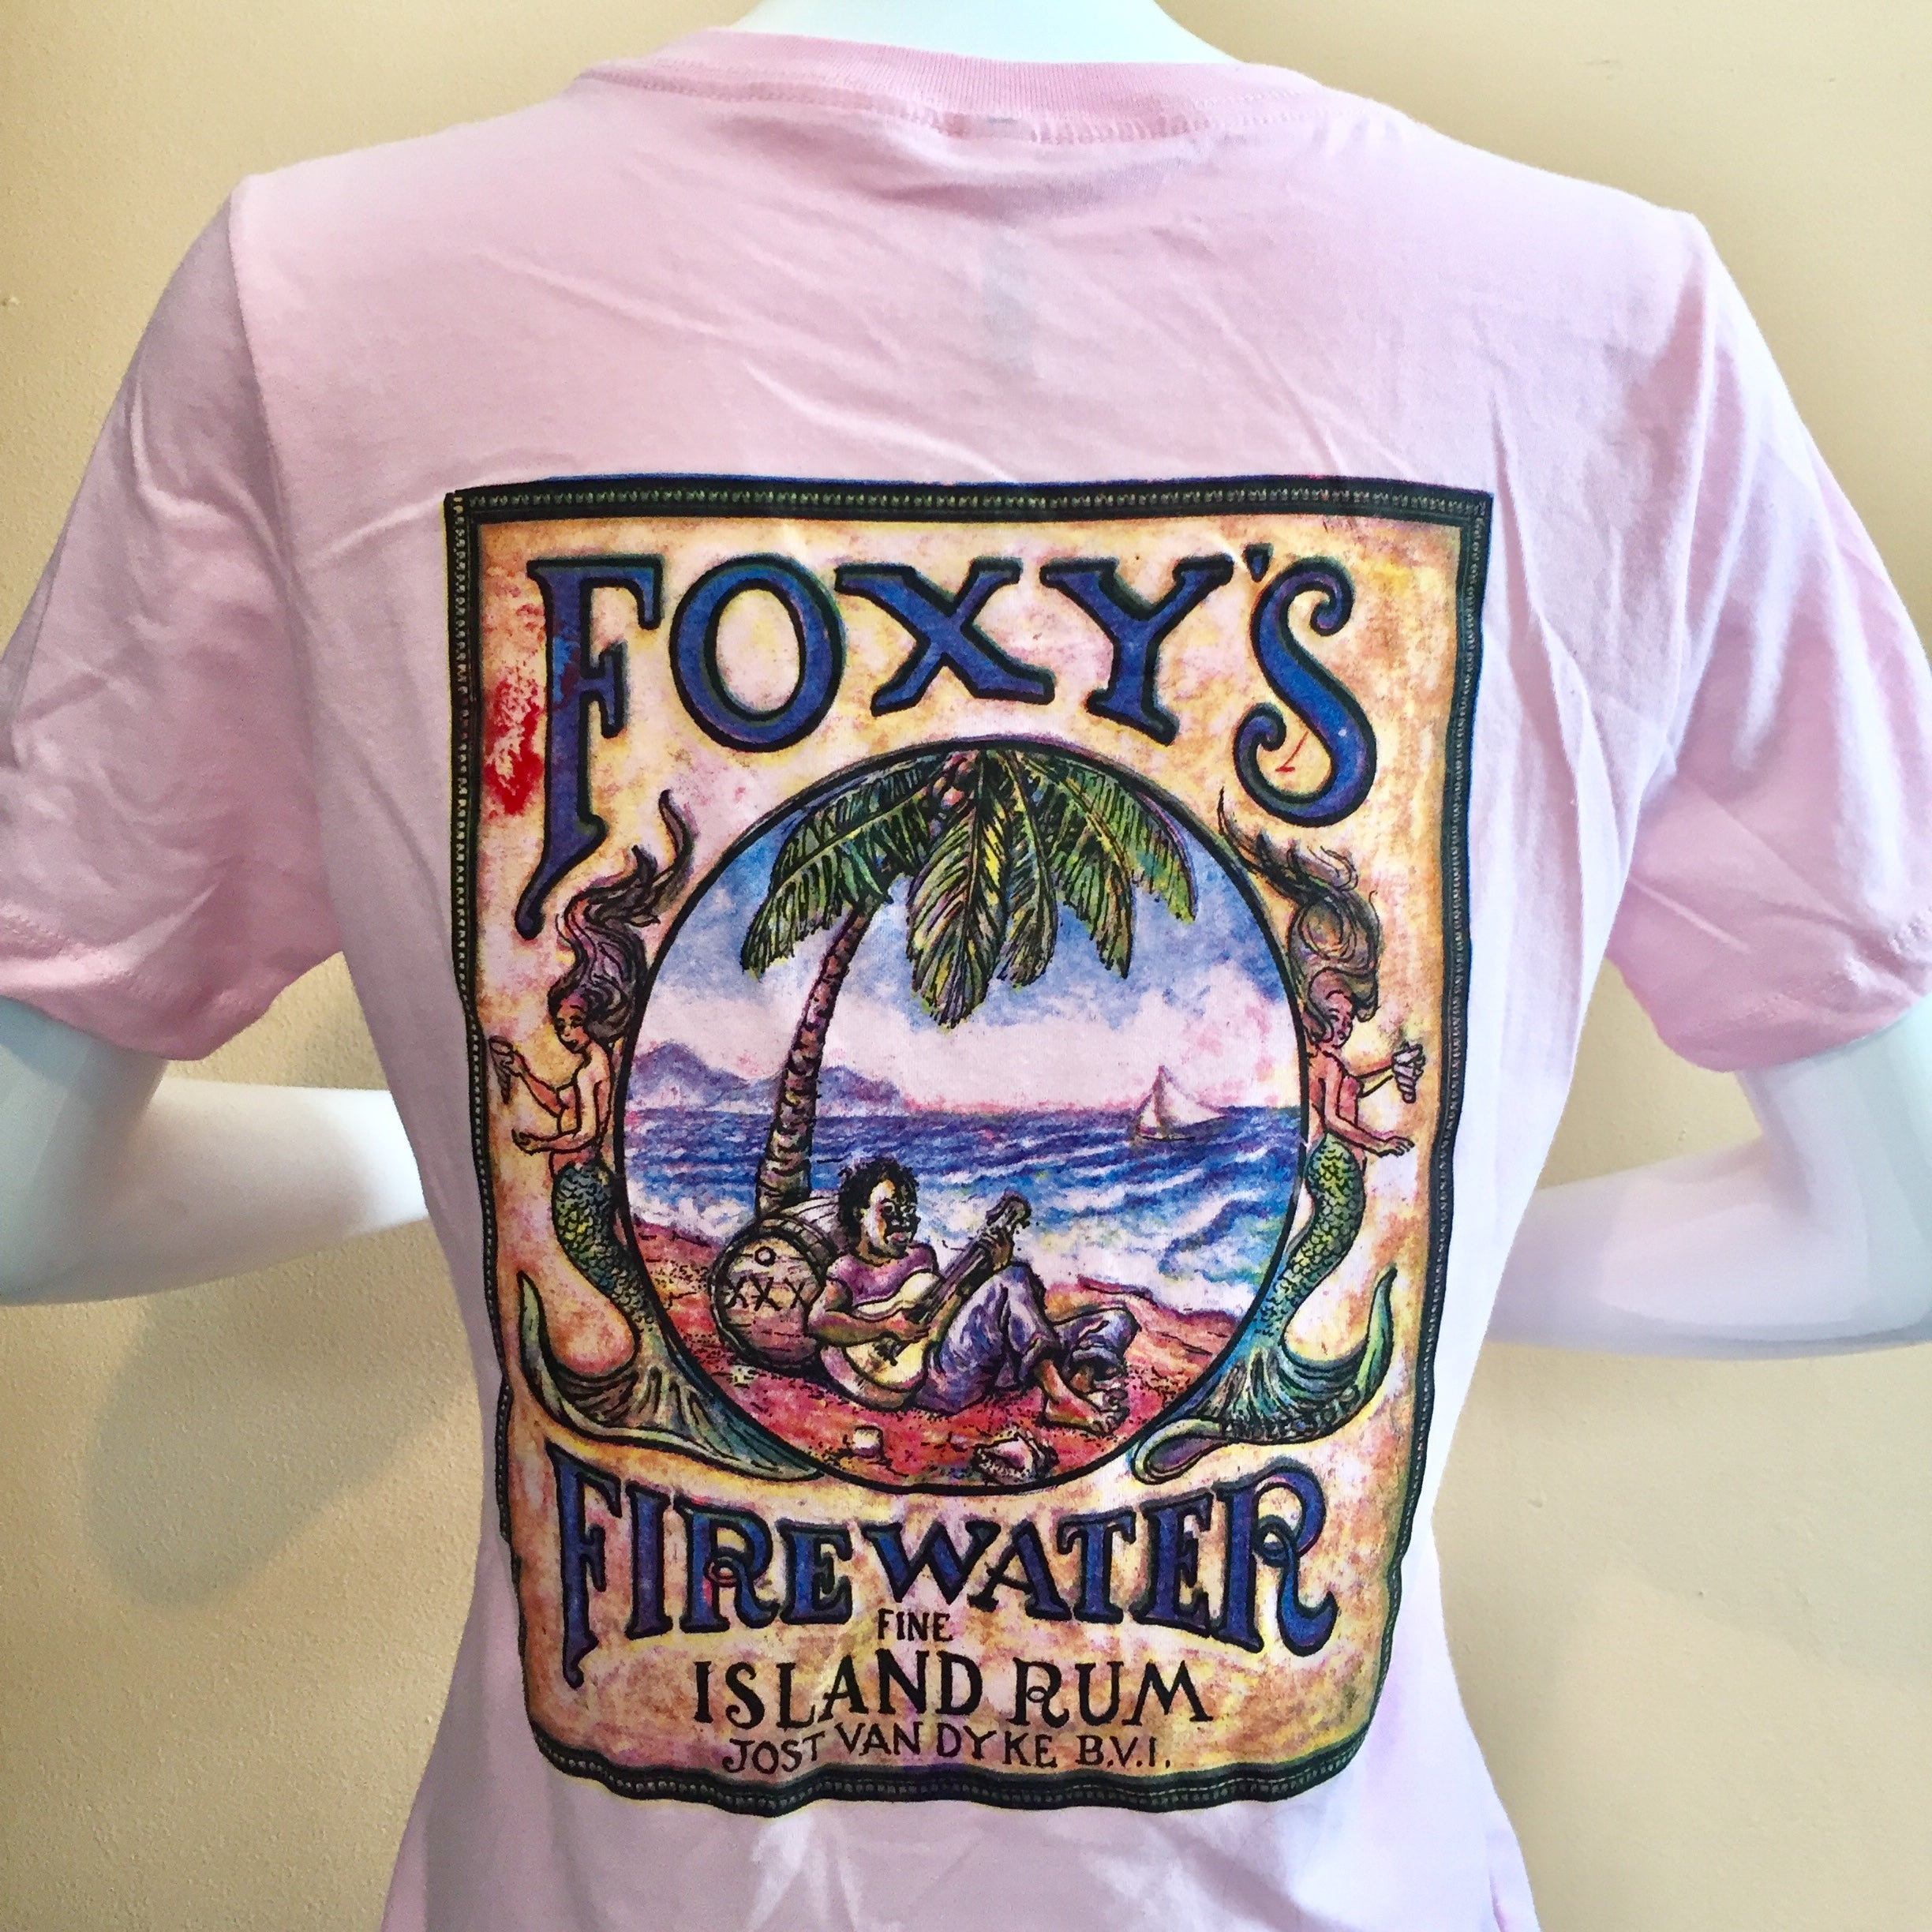 Foxy's 'Firewater' Ladies Relaxed V-neck Short Sleeve Tee